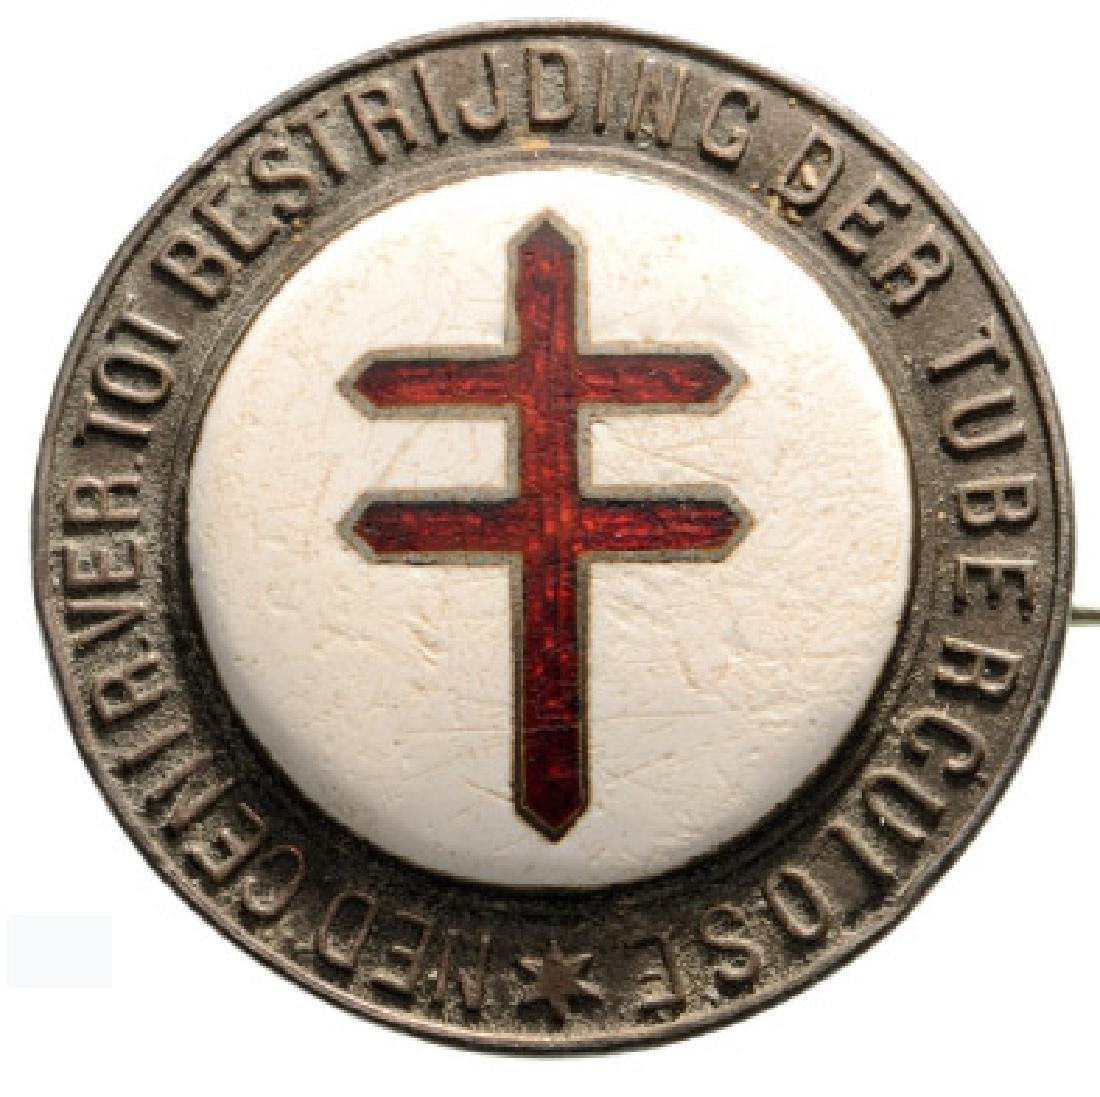 BADGE OF THE NETHERLANDS CRUSADE AGAINST TUBERCULOSIS